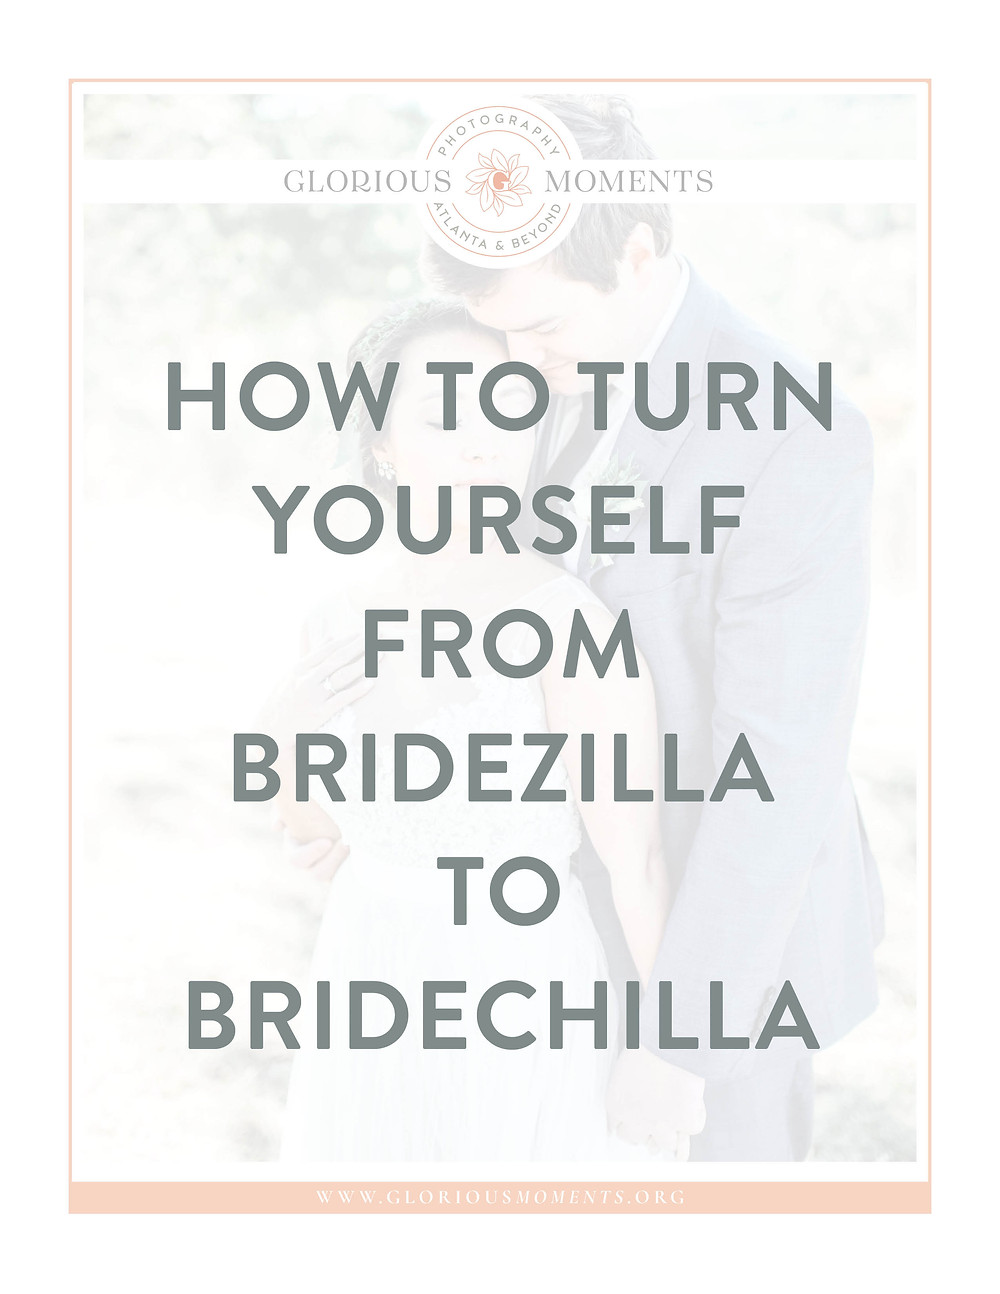 how to avoid a stressful wedding day, an article that provides tips and tricks to have a stress free wedding day